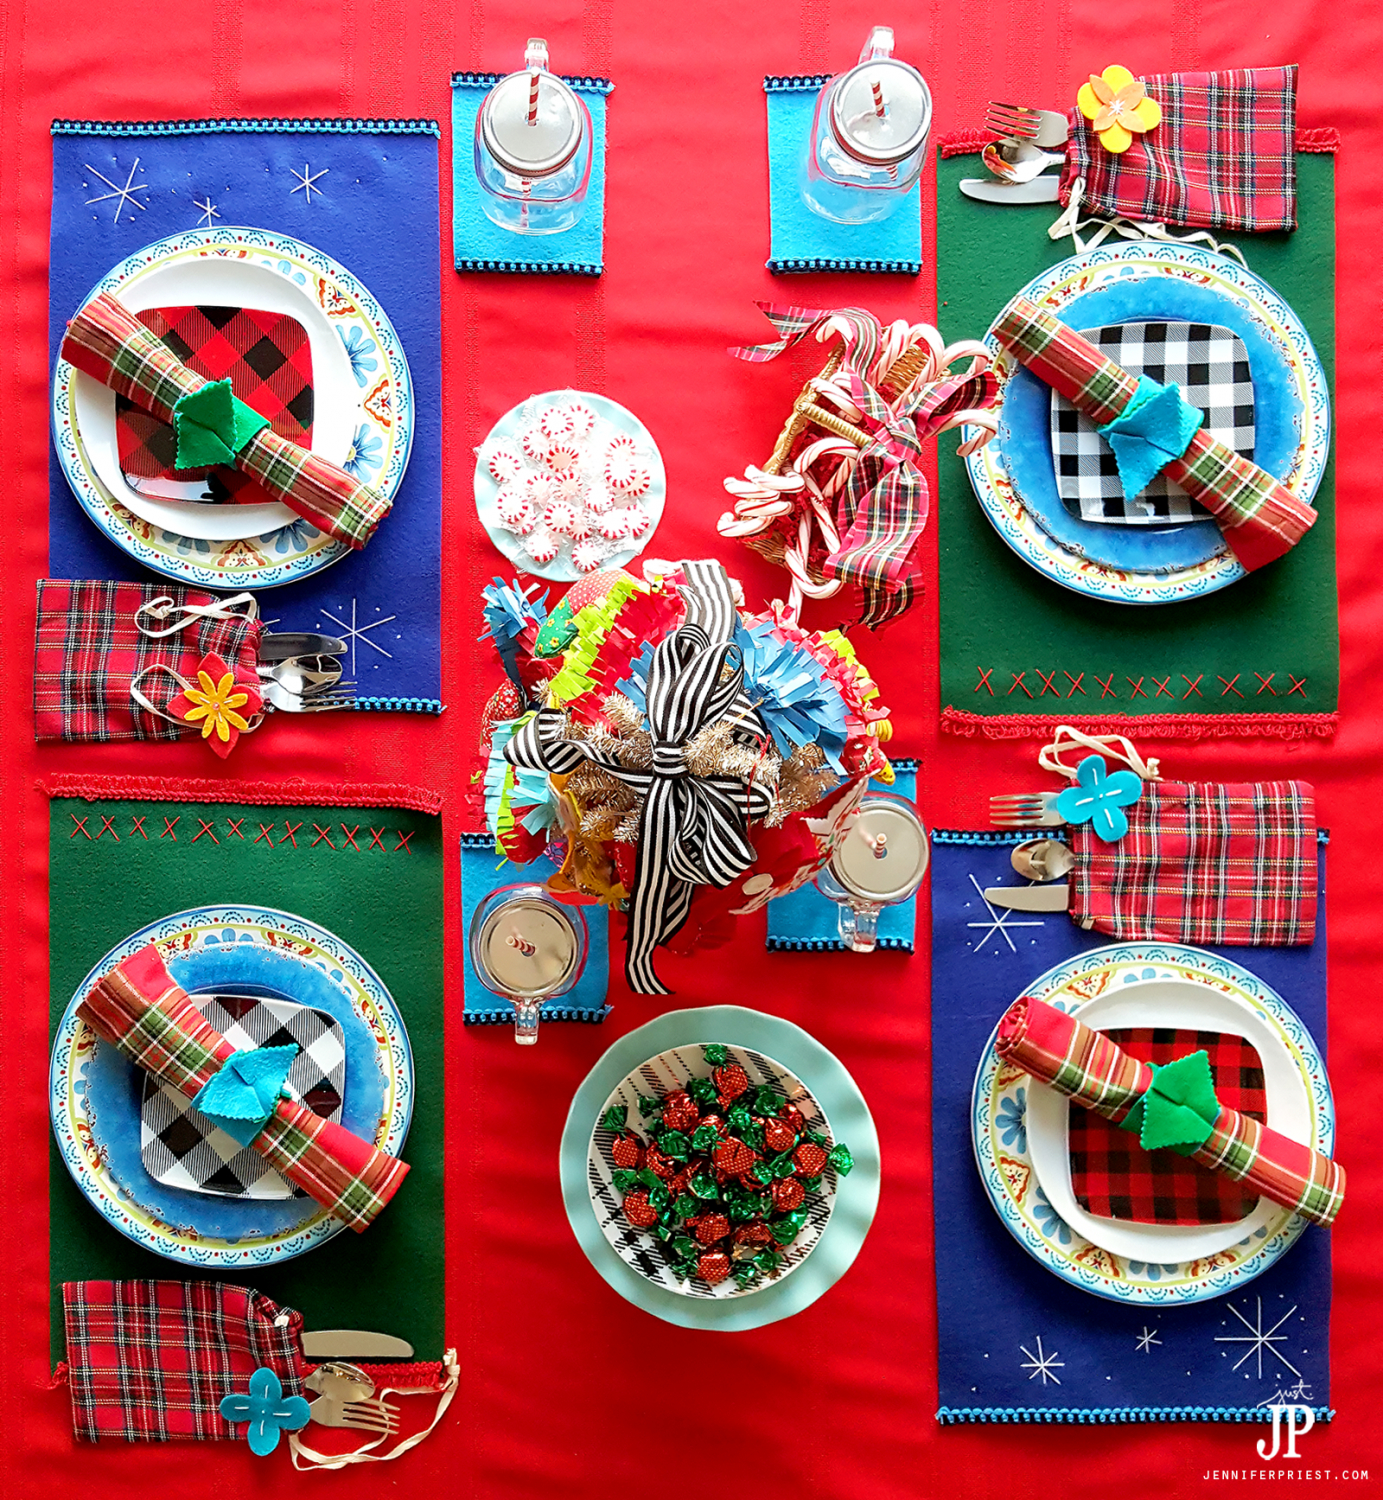 DIY-Folk-Art-Latin-Christmas-Table-Place-Setting-JPriest